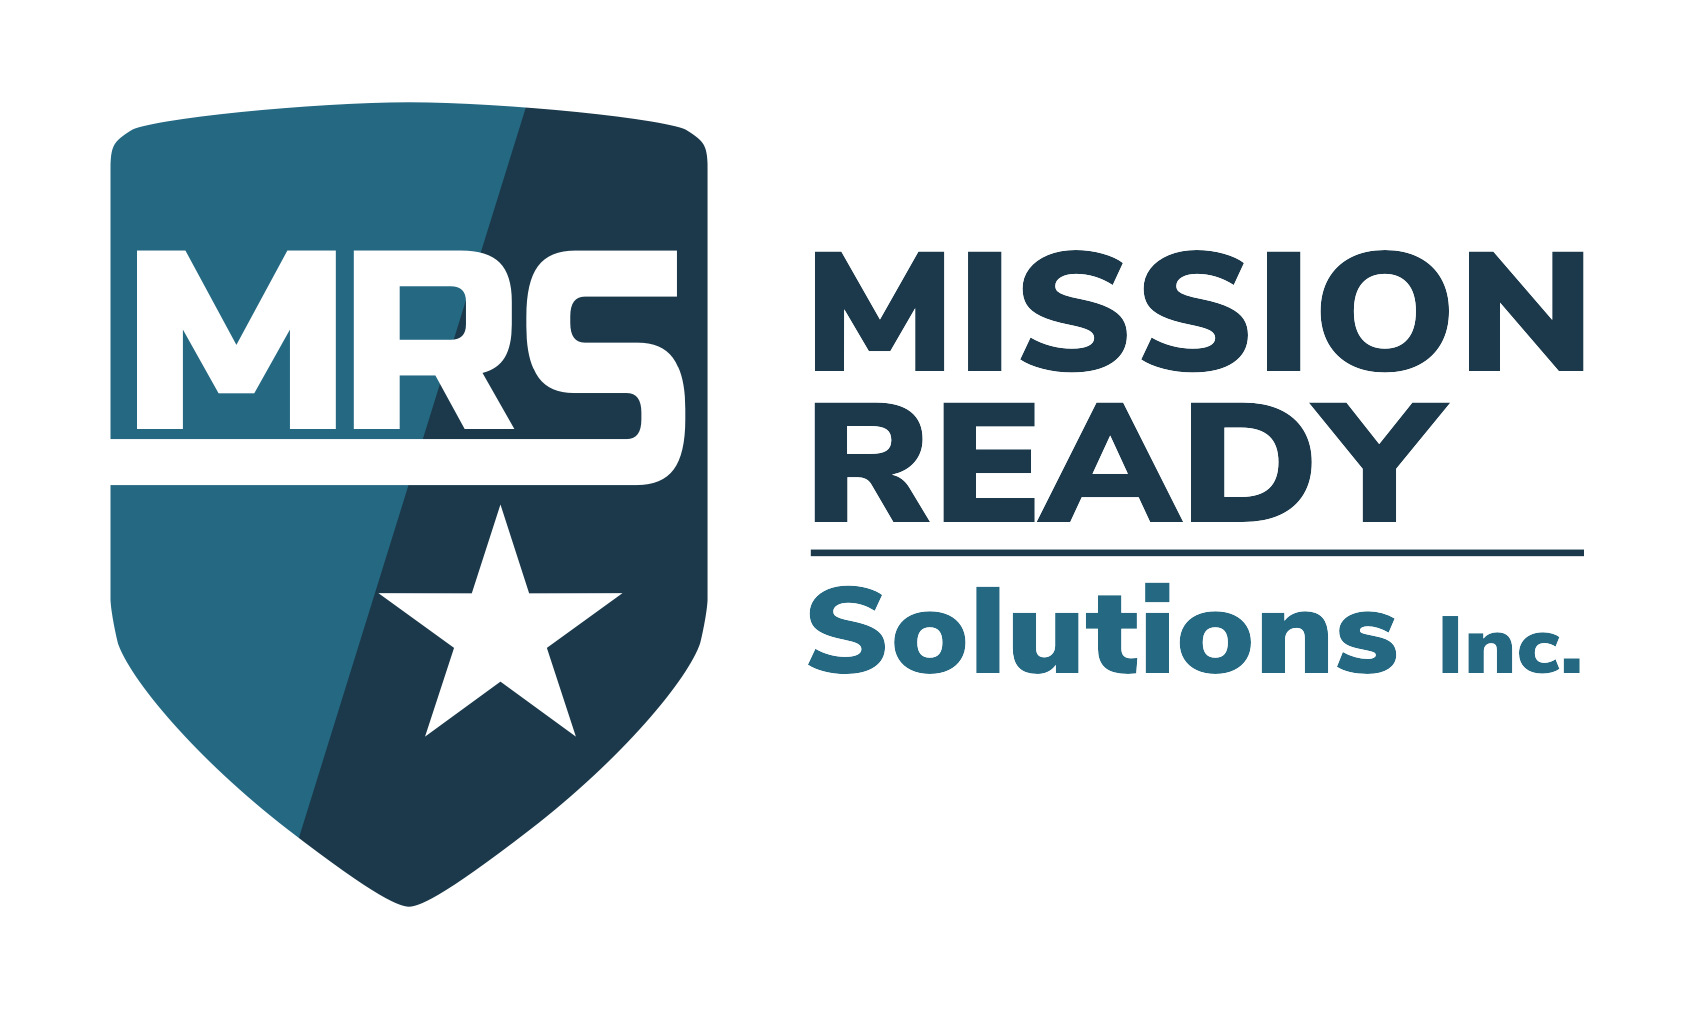 Mission Ready Outperforms Q4 2019 Order Fulfilment Projections by 25%, Provides Corporate Update